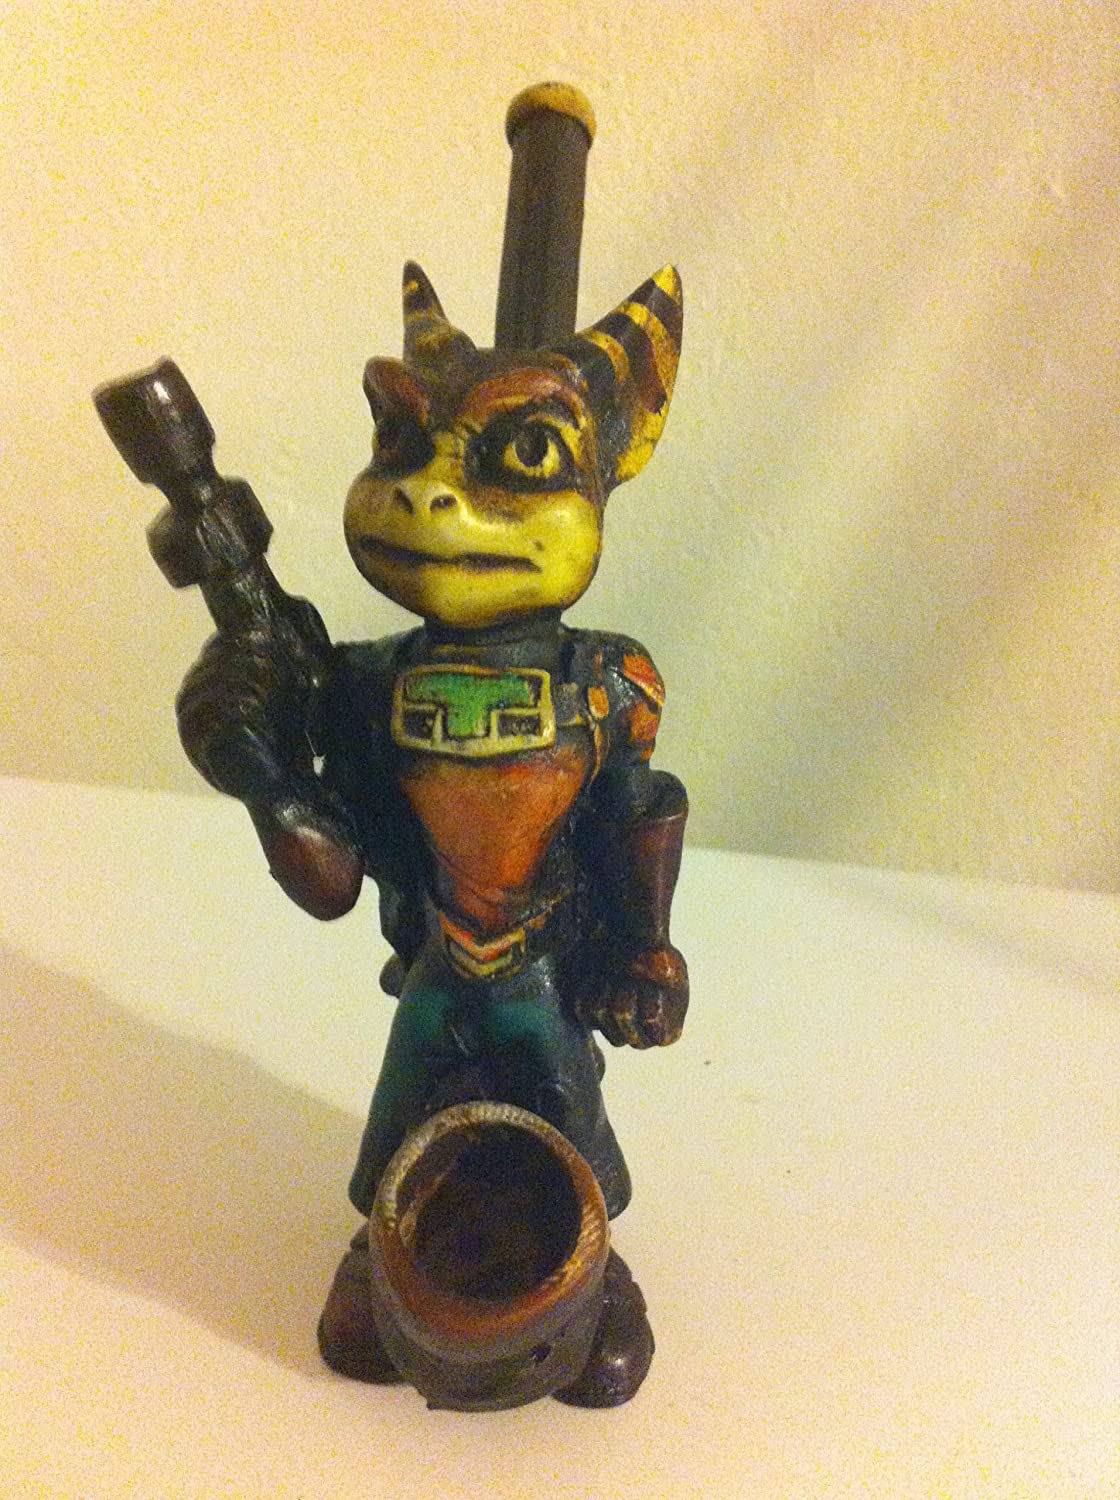 Ratchet from Ratchet & Clank Tobacco Pipe